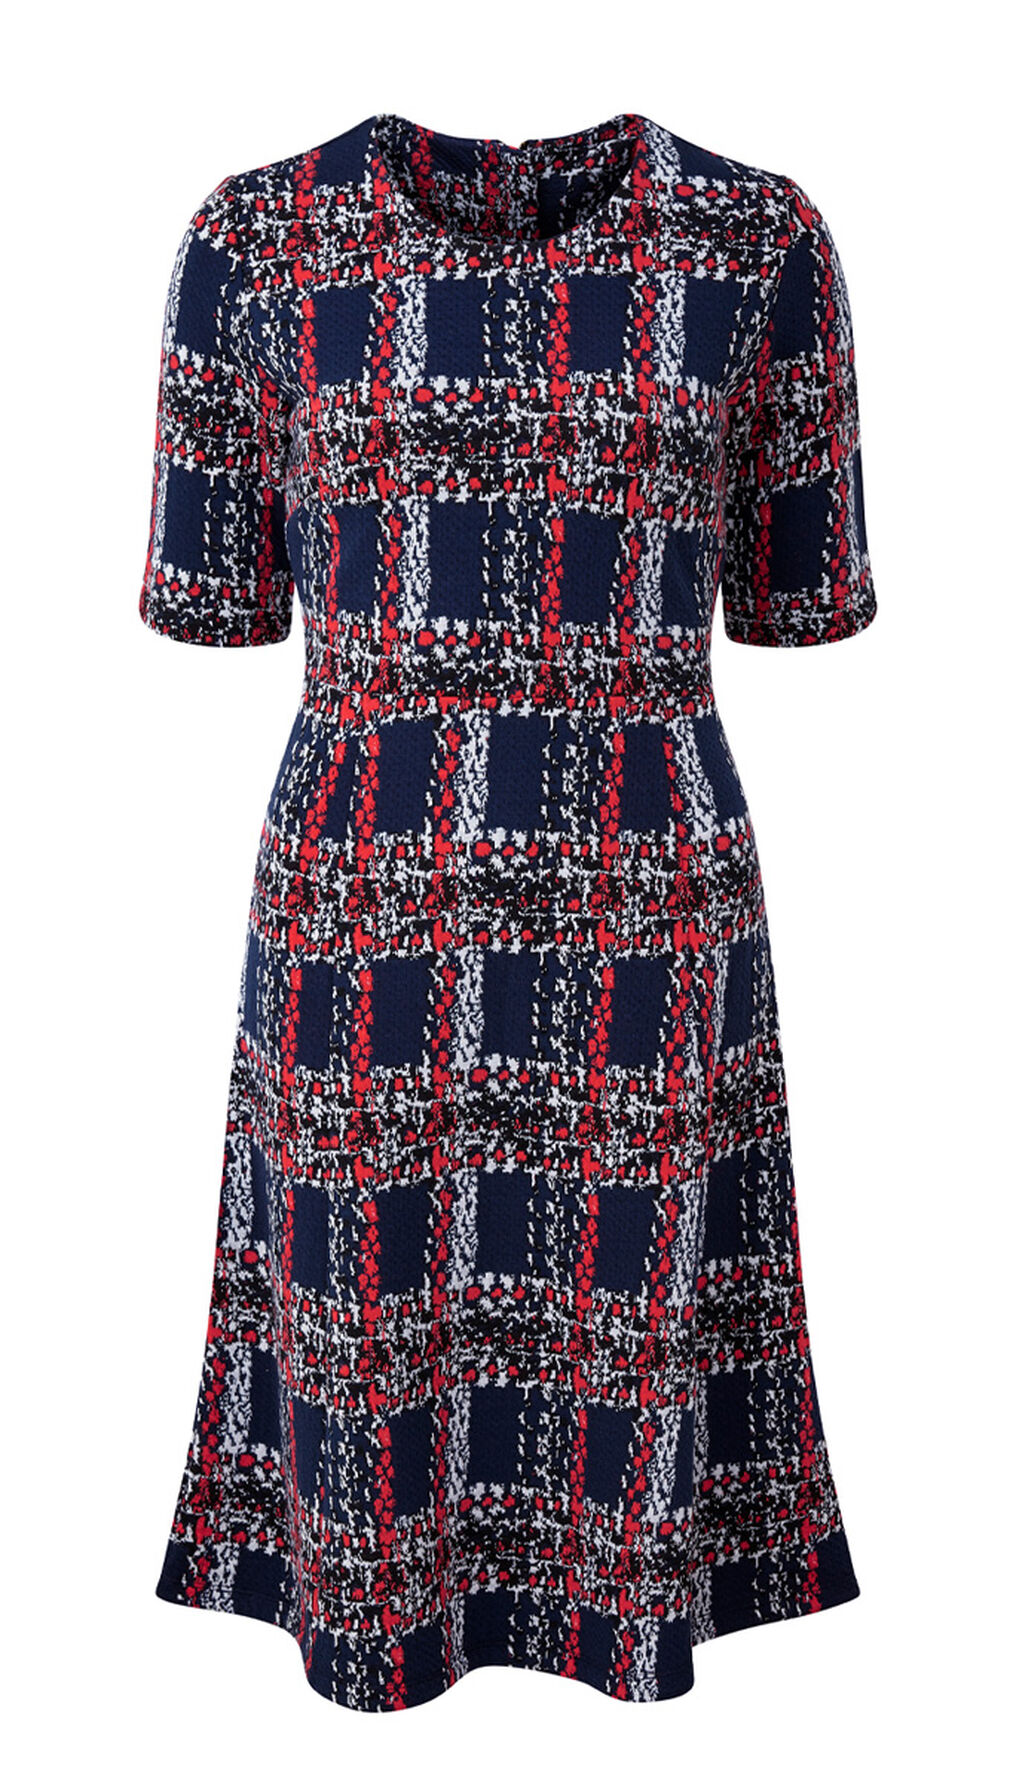 The Feelgood Coat   Textured Check Dress   By Cotton Traders